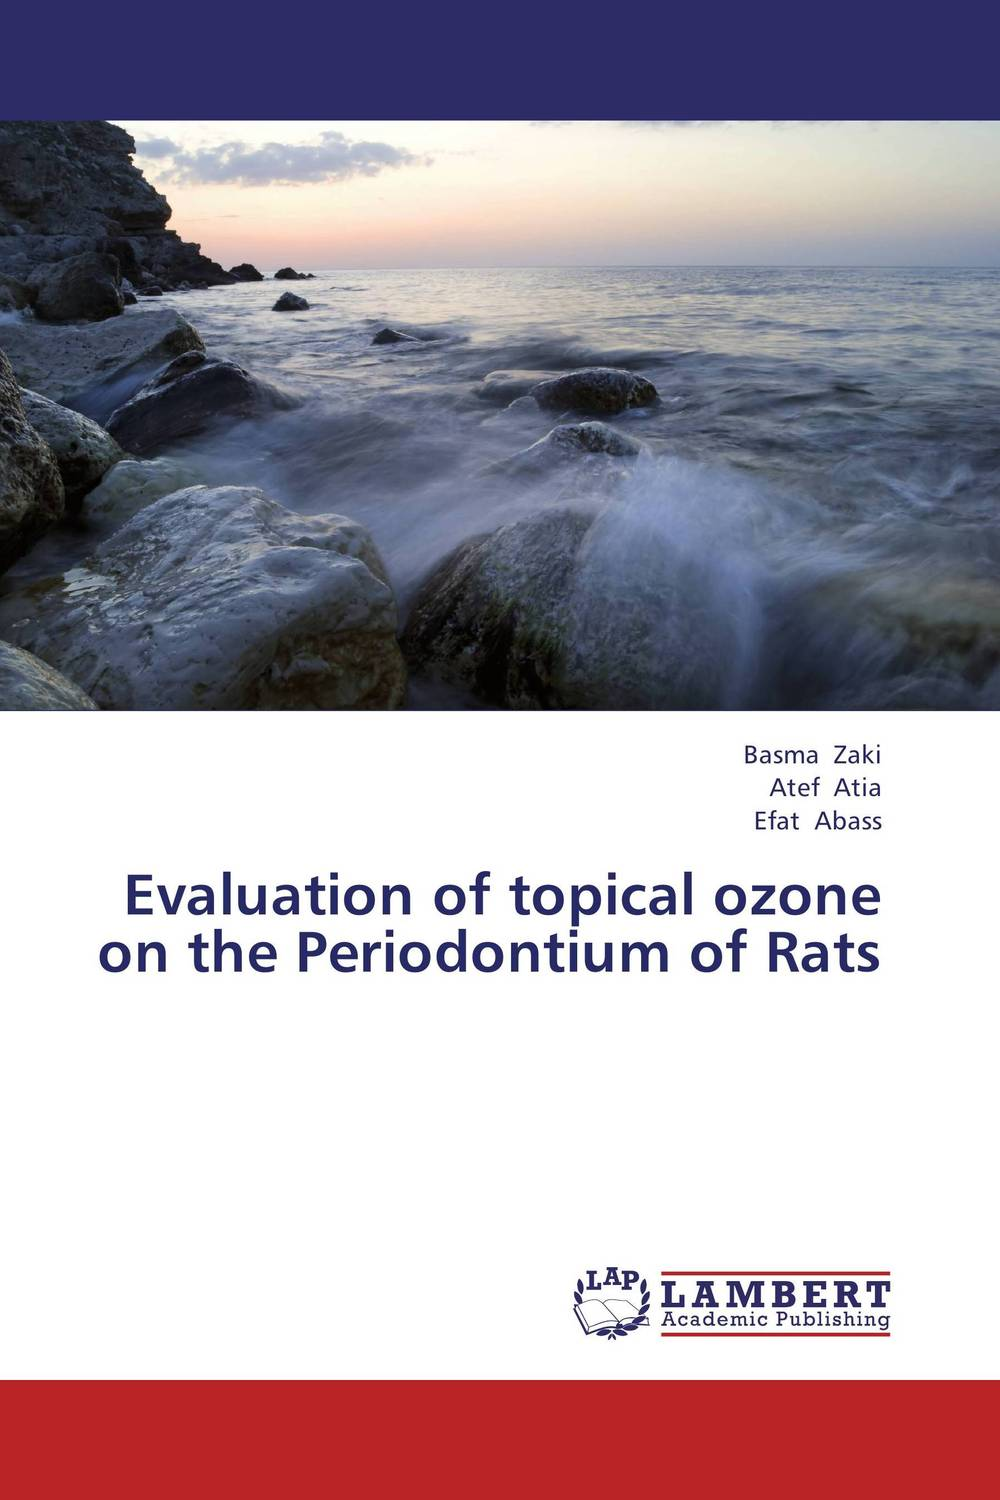 цены Evaluation of topical ozone on the Periodontium of Rats